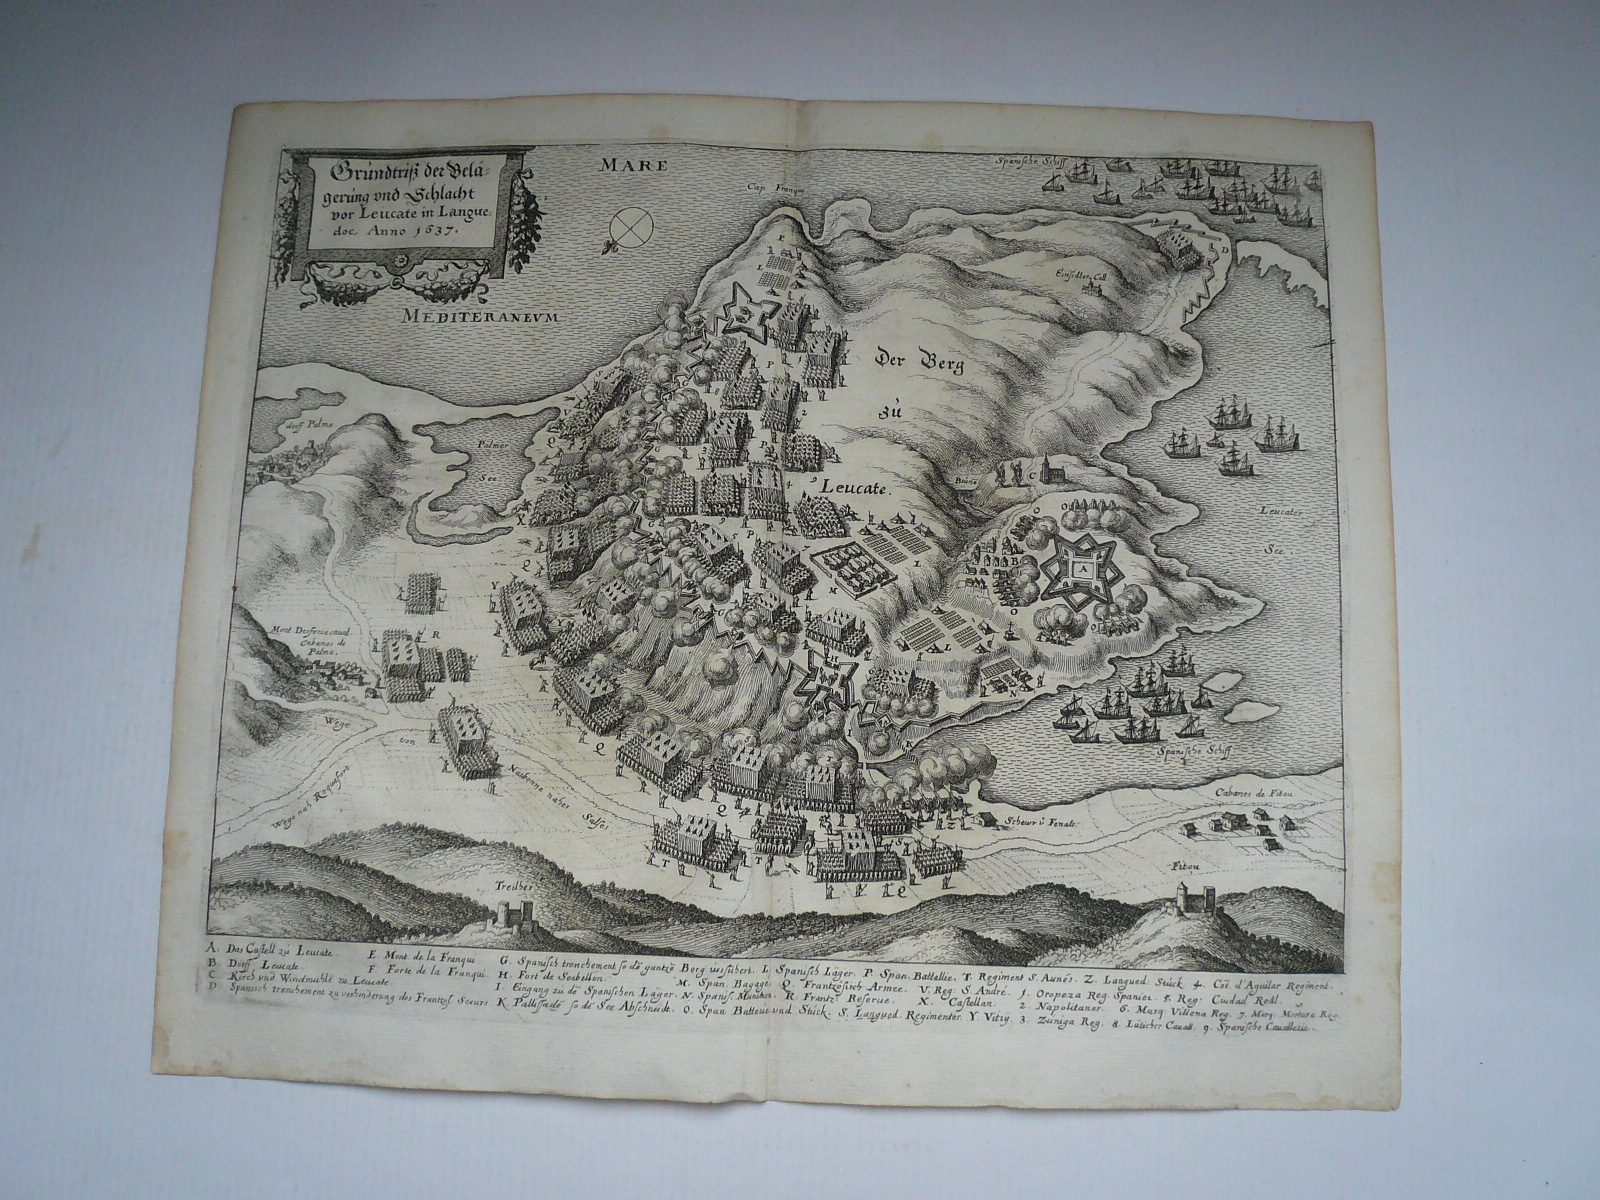 Leucate, anno 1660, Merian Matthäus Copperengraving, edited by M